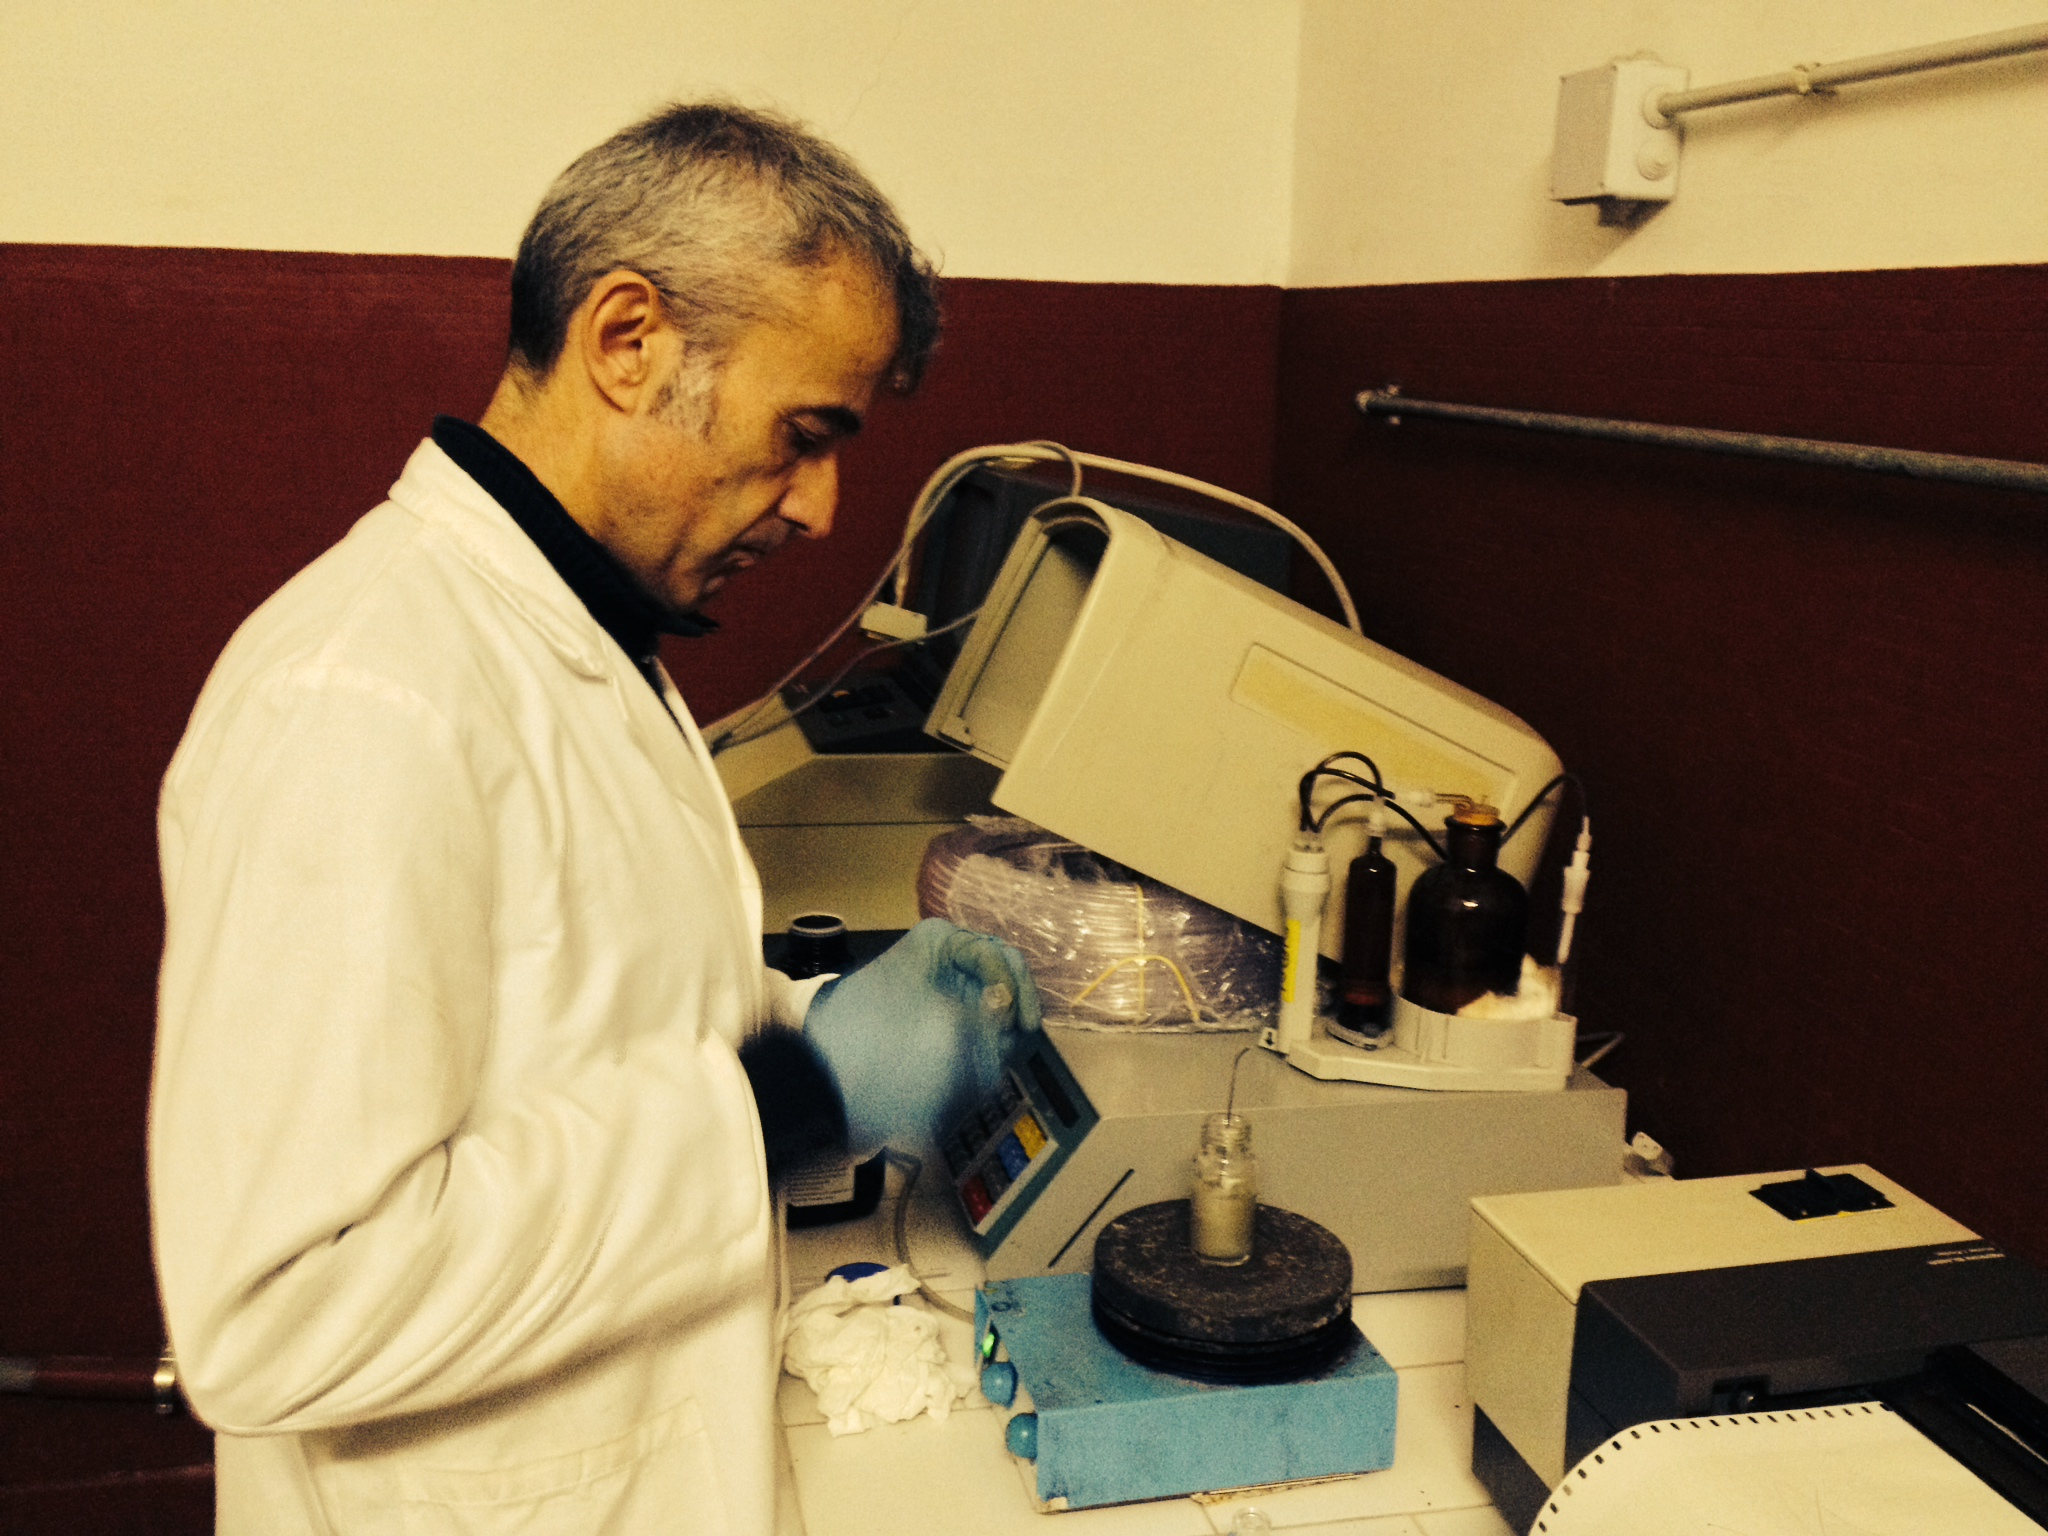 Corrado Balestra taking spectrophotometric measurements of an emulsion sample.